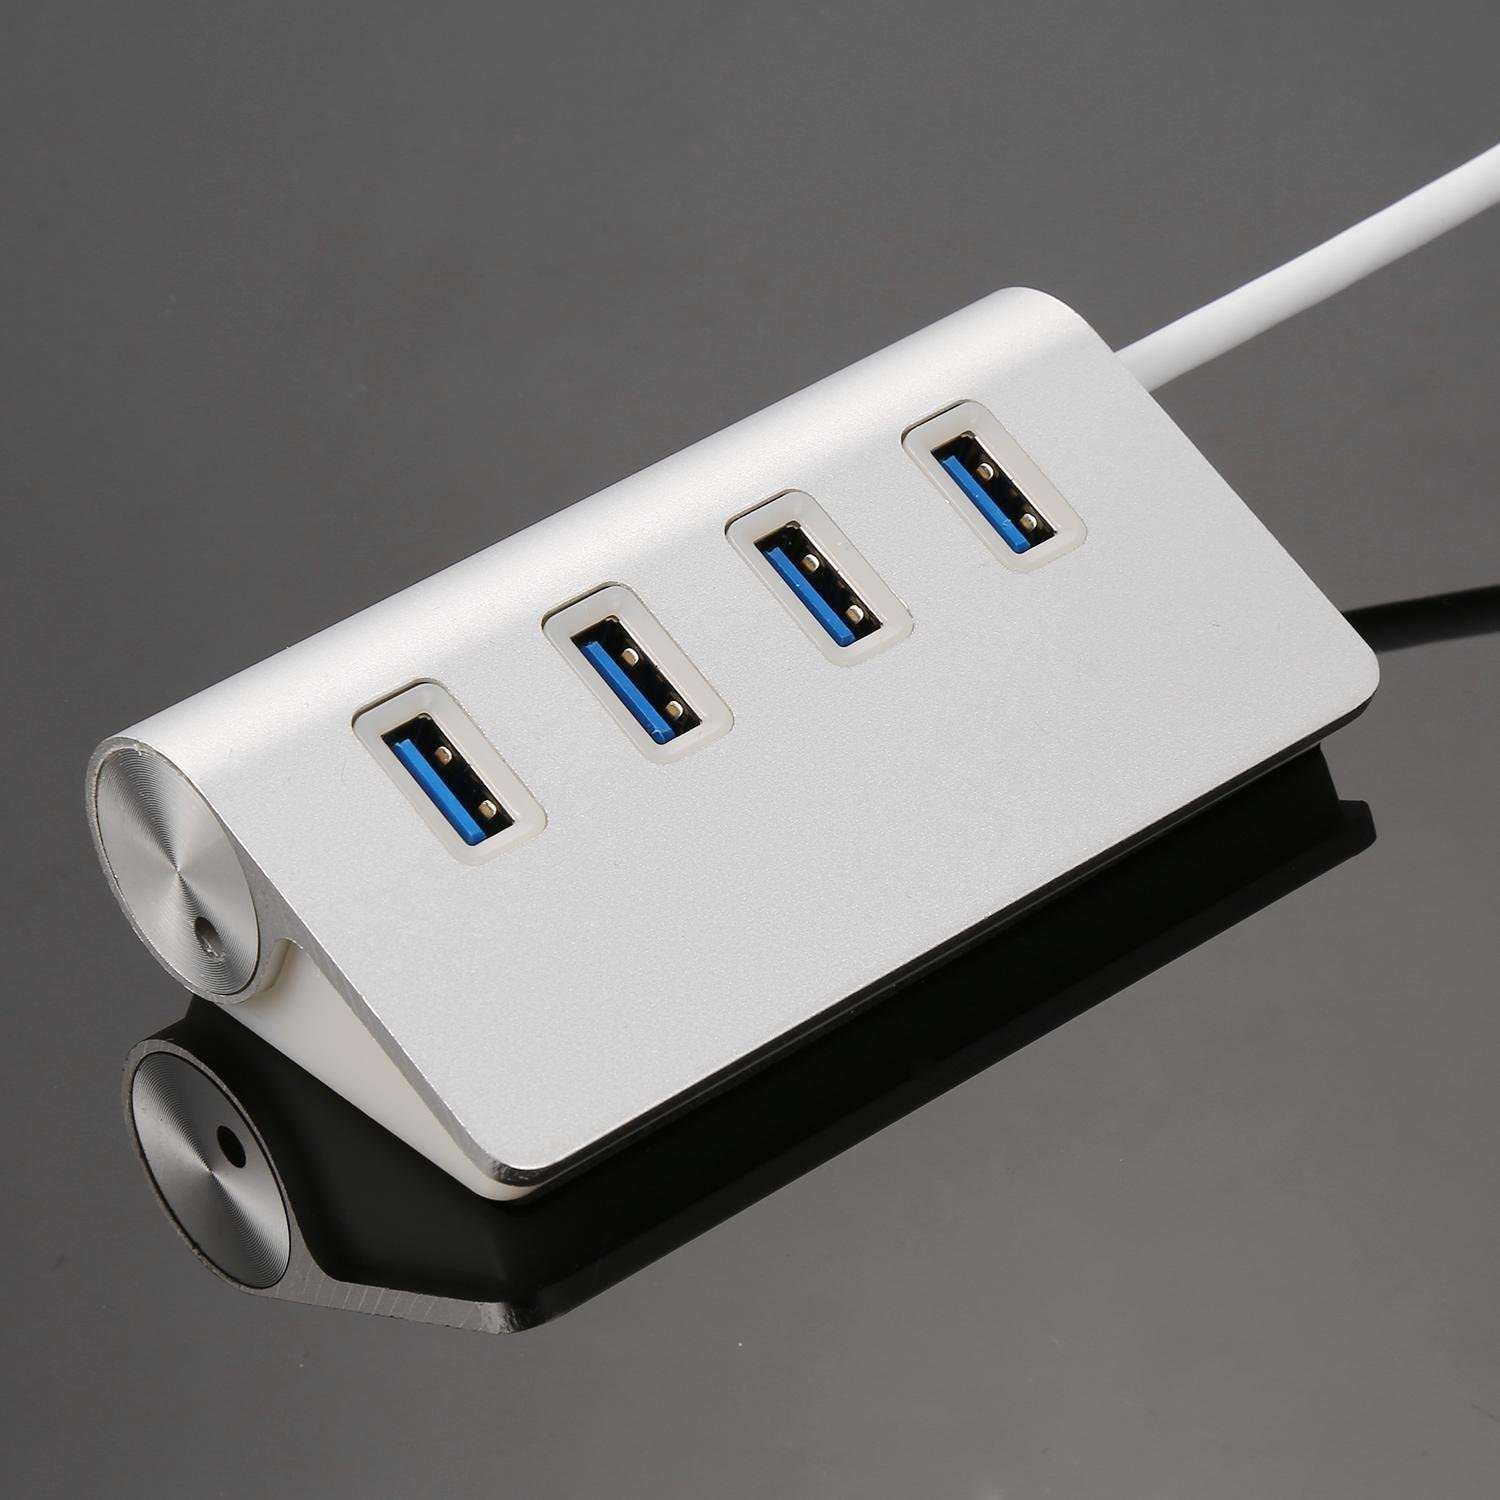 Ouyilu New 4 Port Aluminum Alloy USB 3.0 Concentrator High Speed For PC Laptop